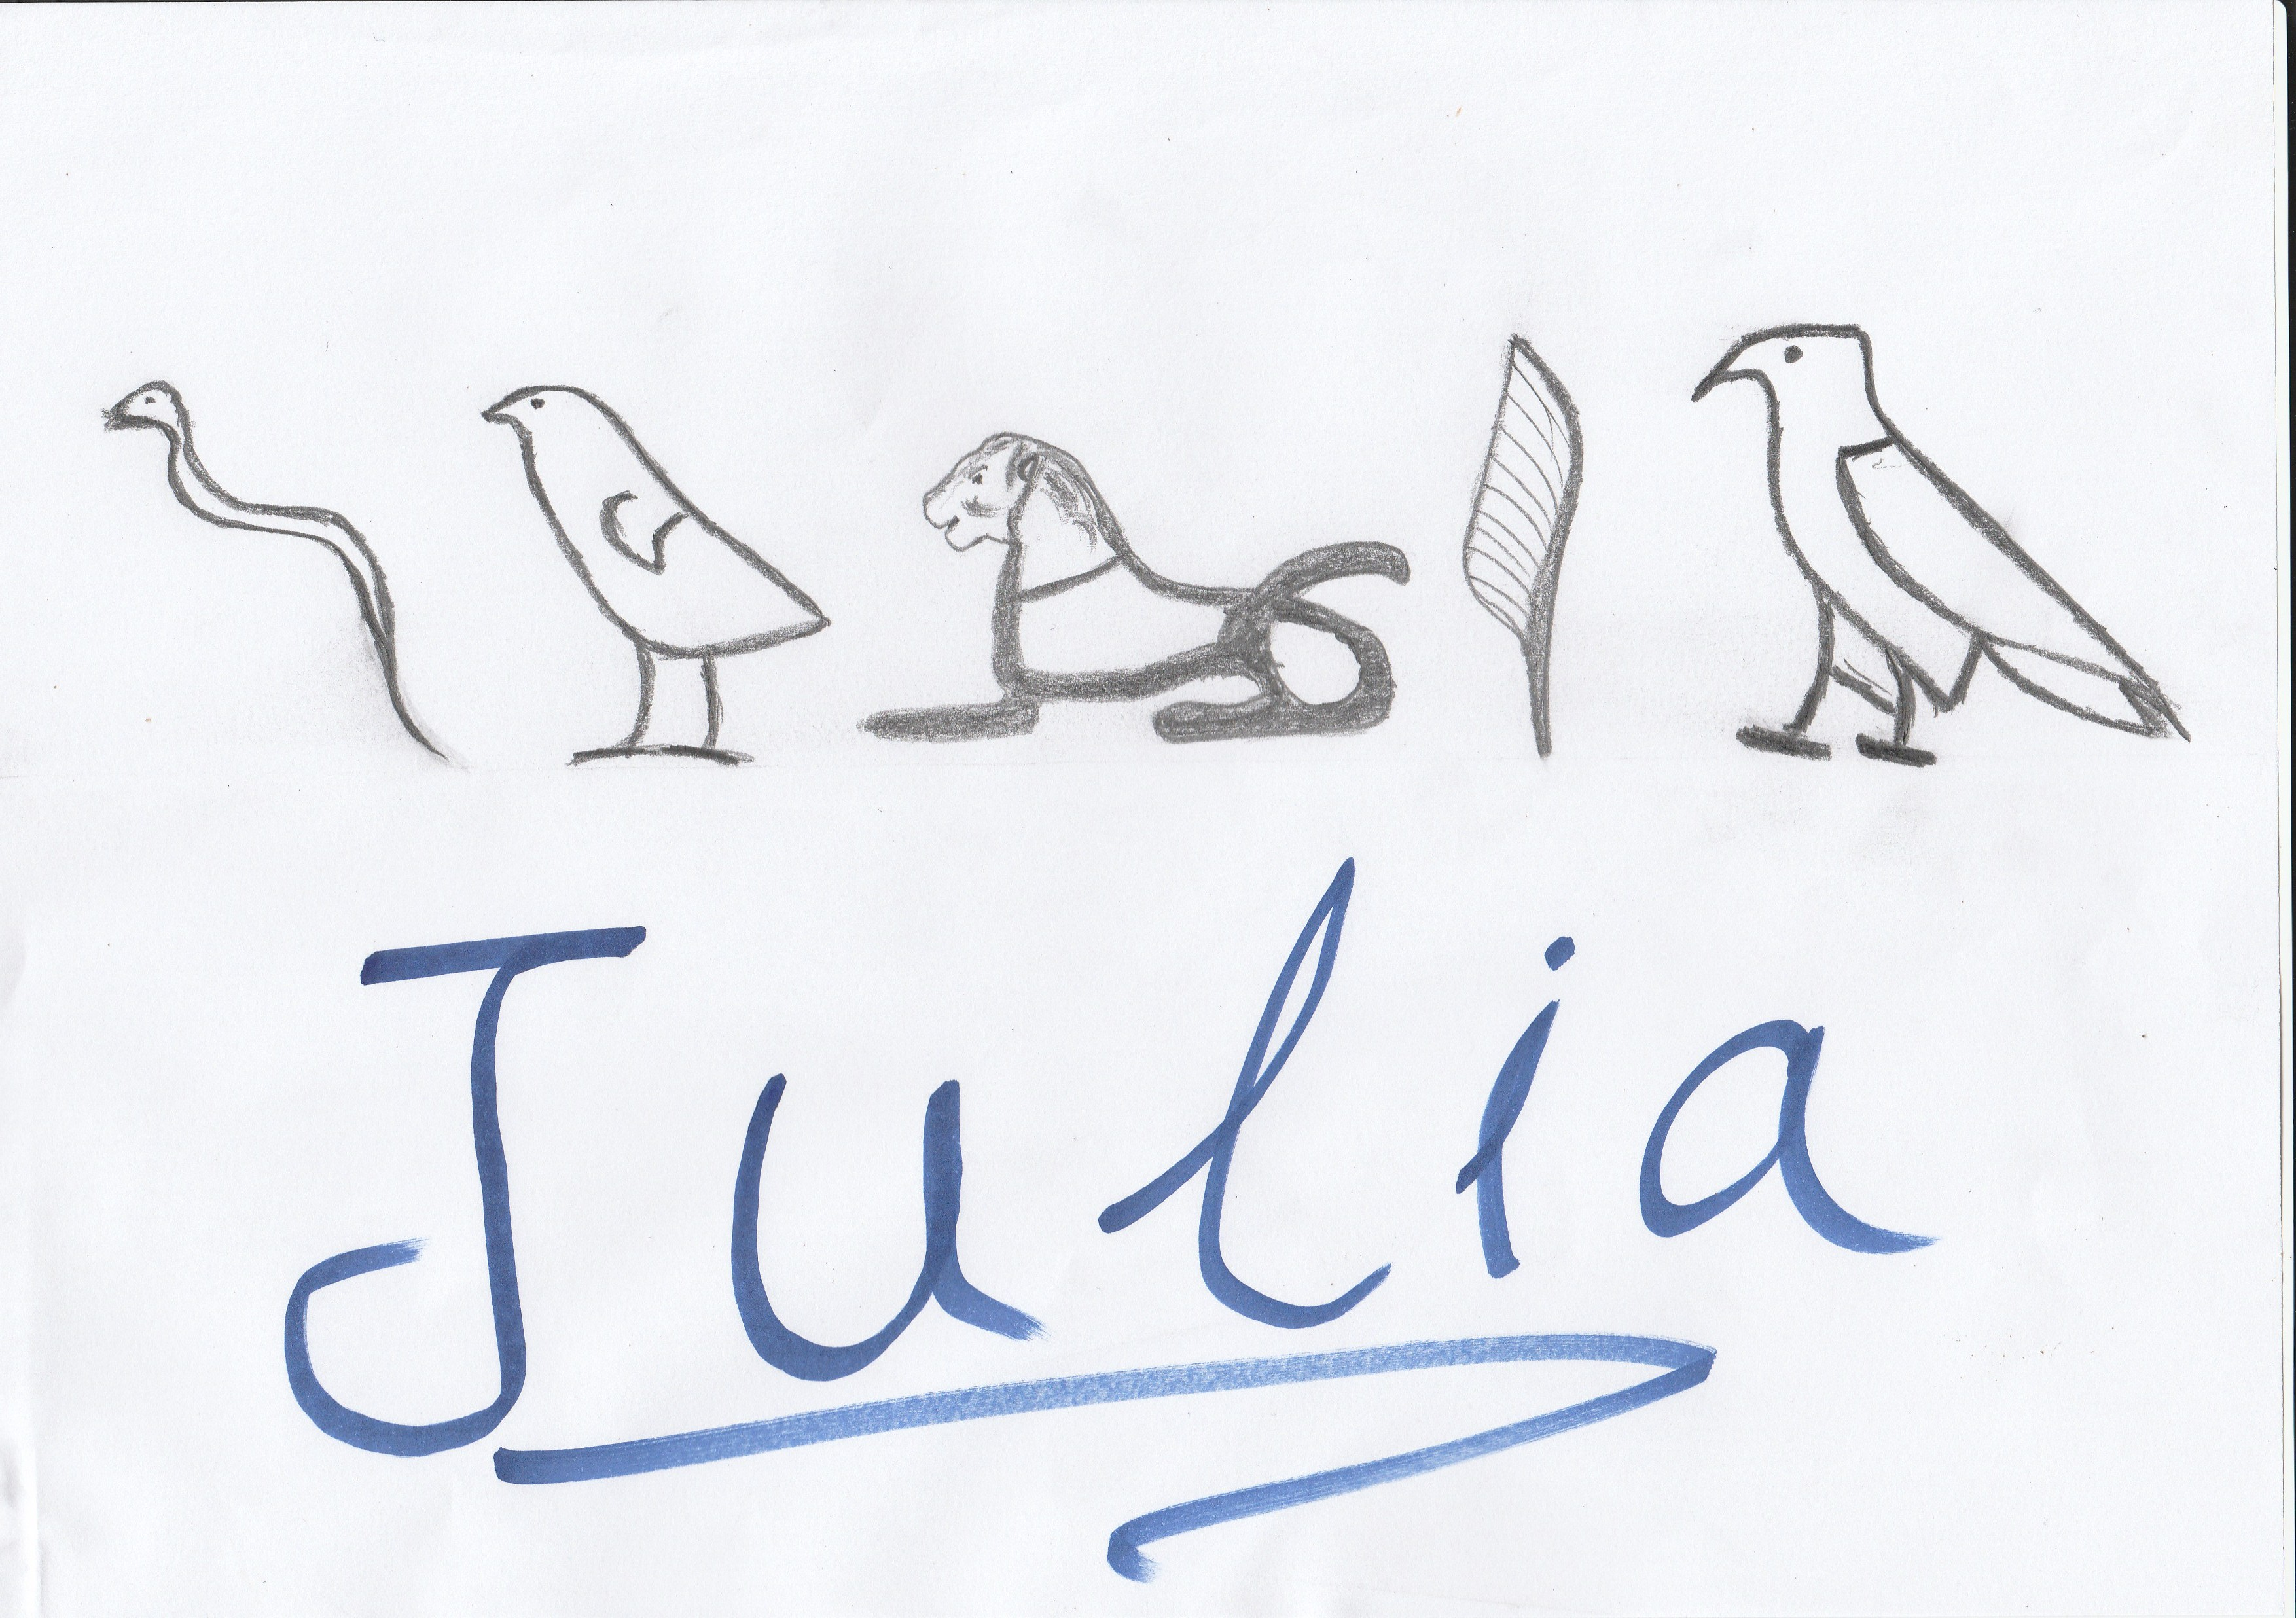 Write your name with hieroglyphic calligraphy for